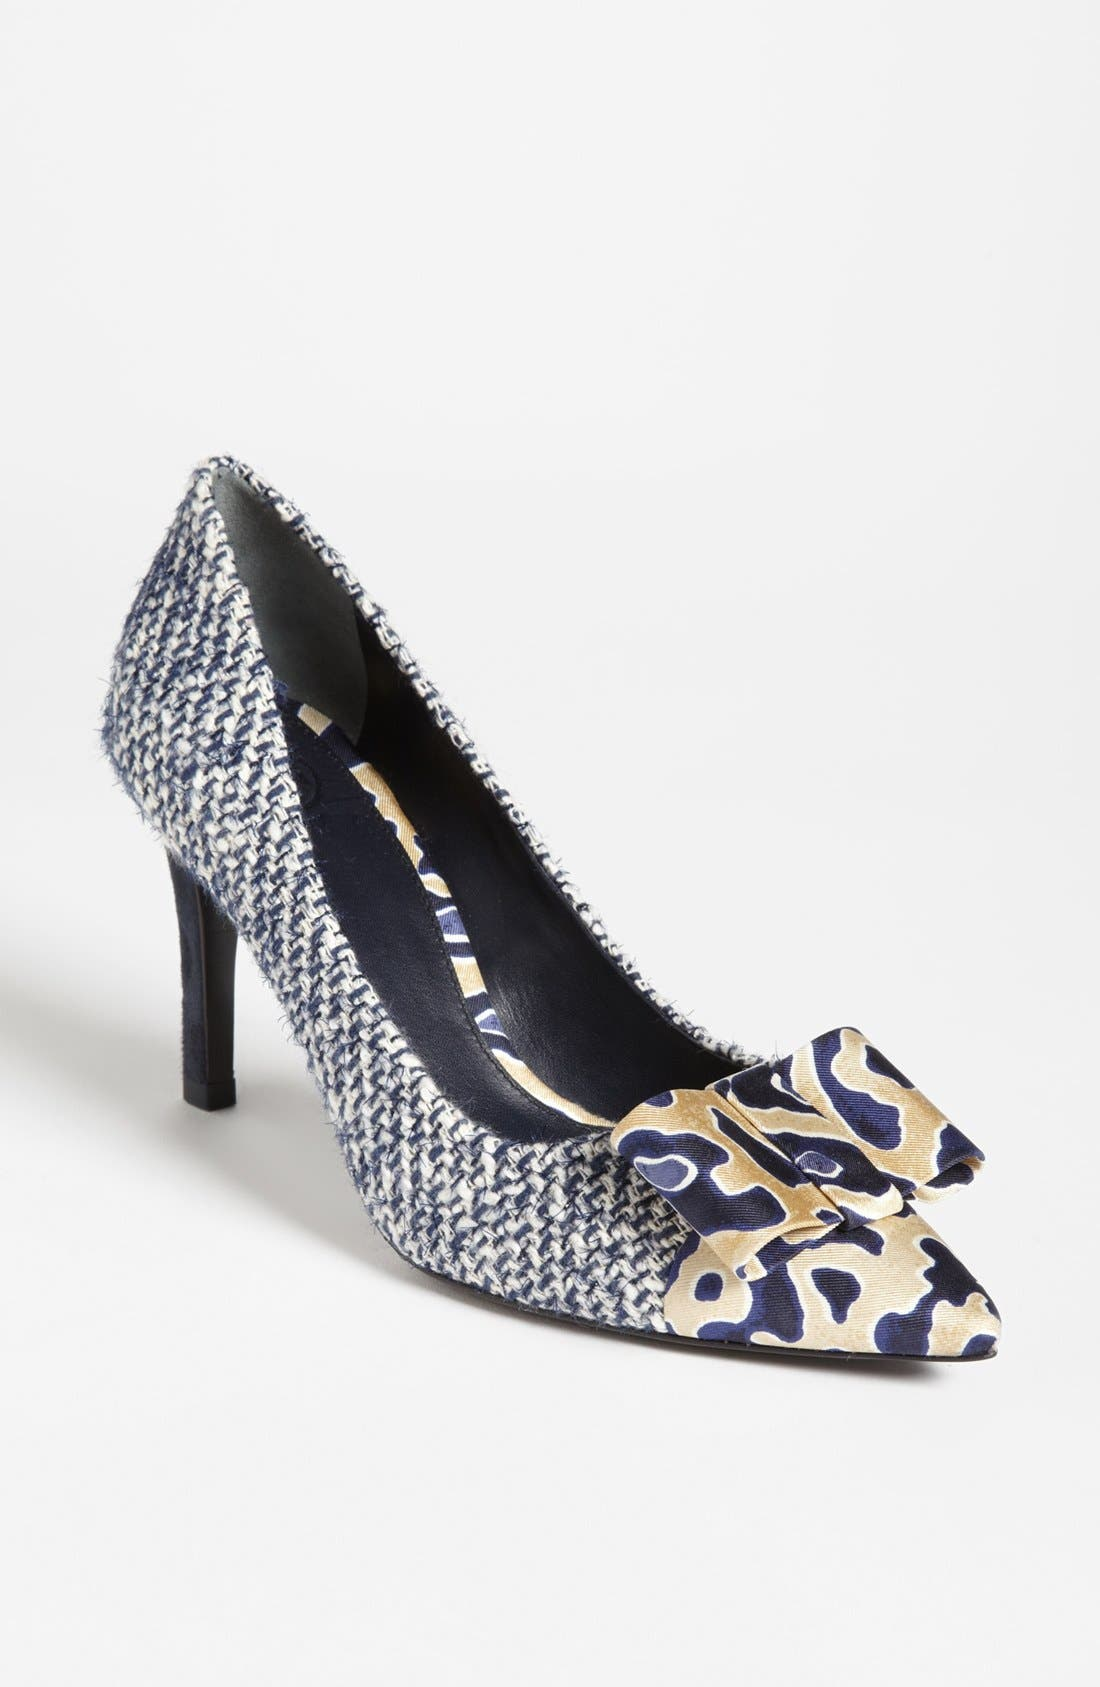 Main Image - Tory Burch 'Cleo' Pump